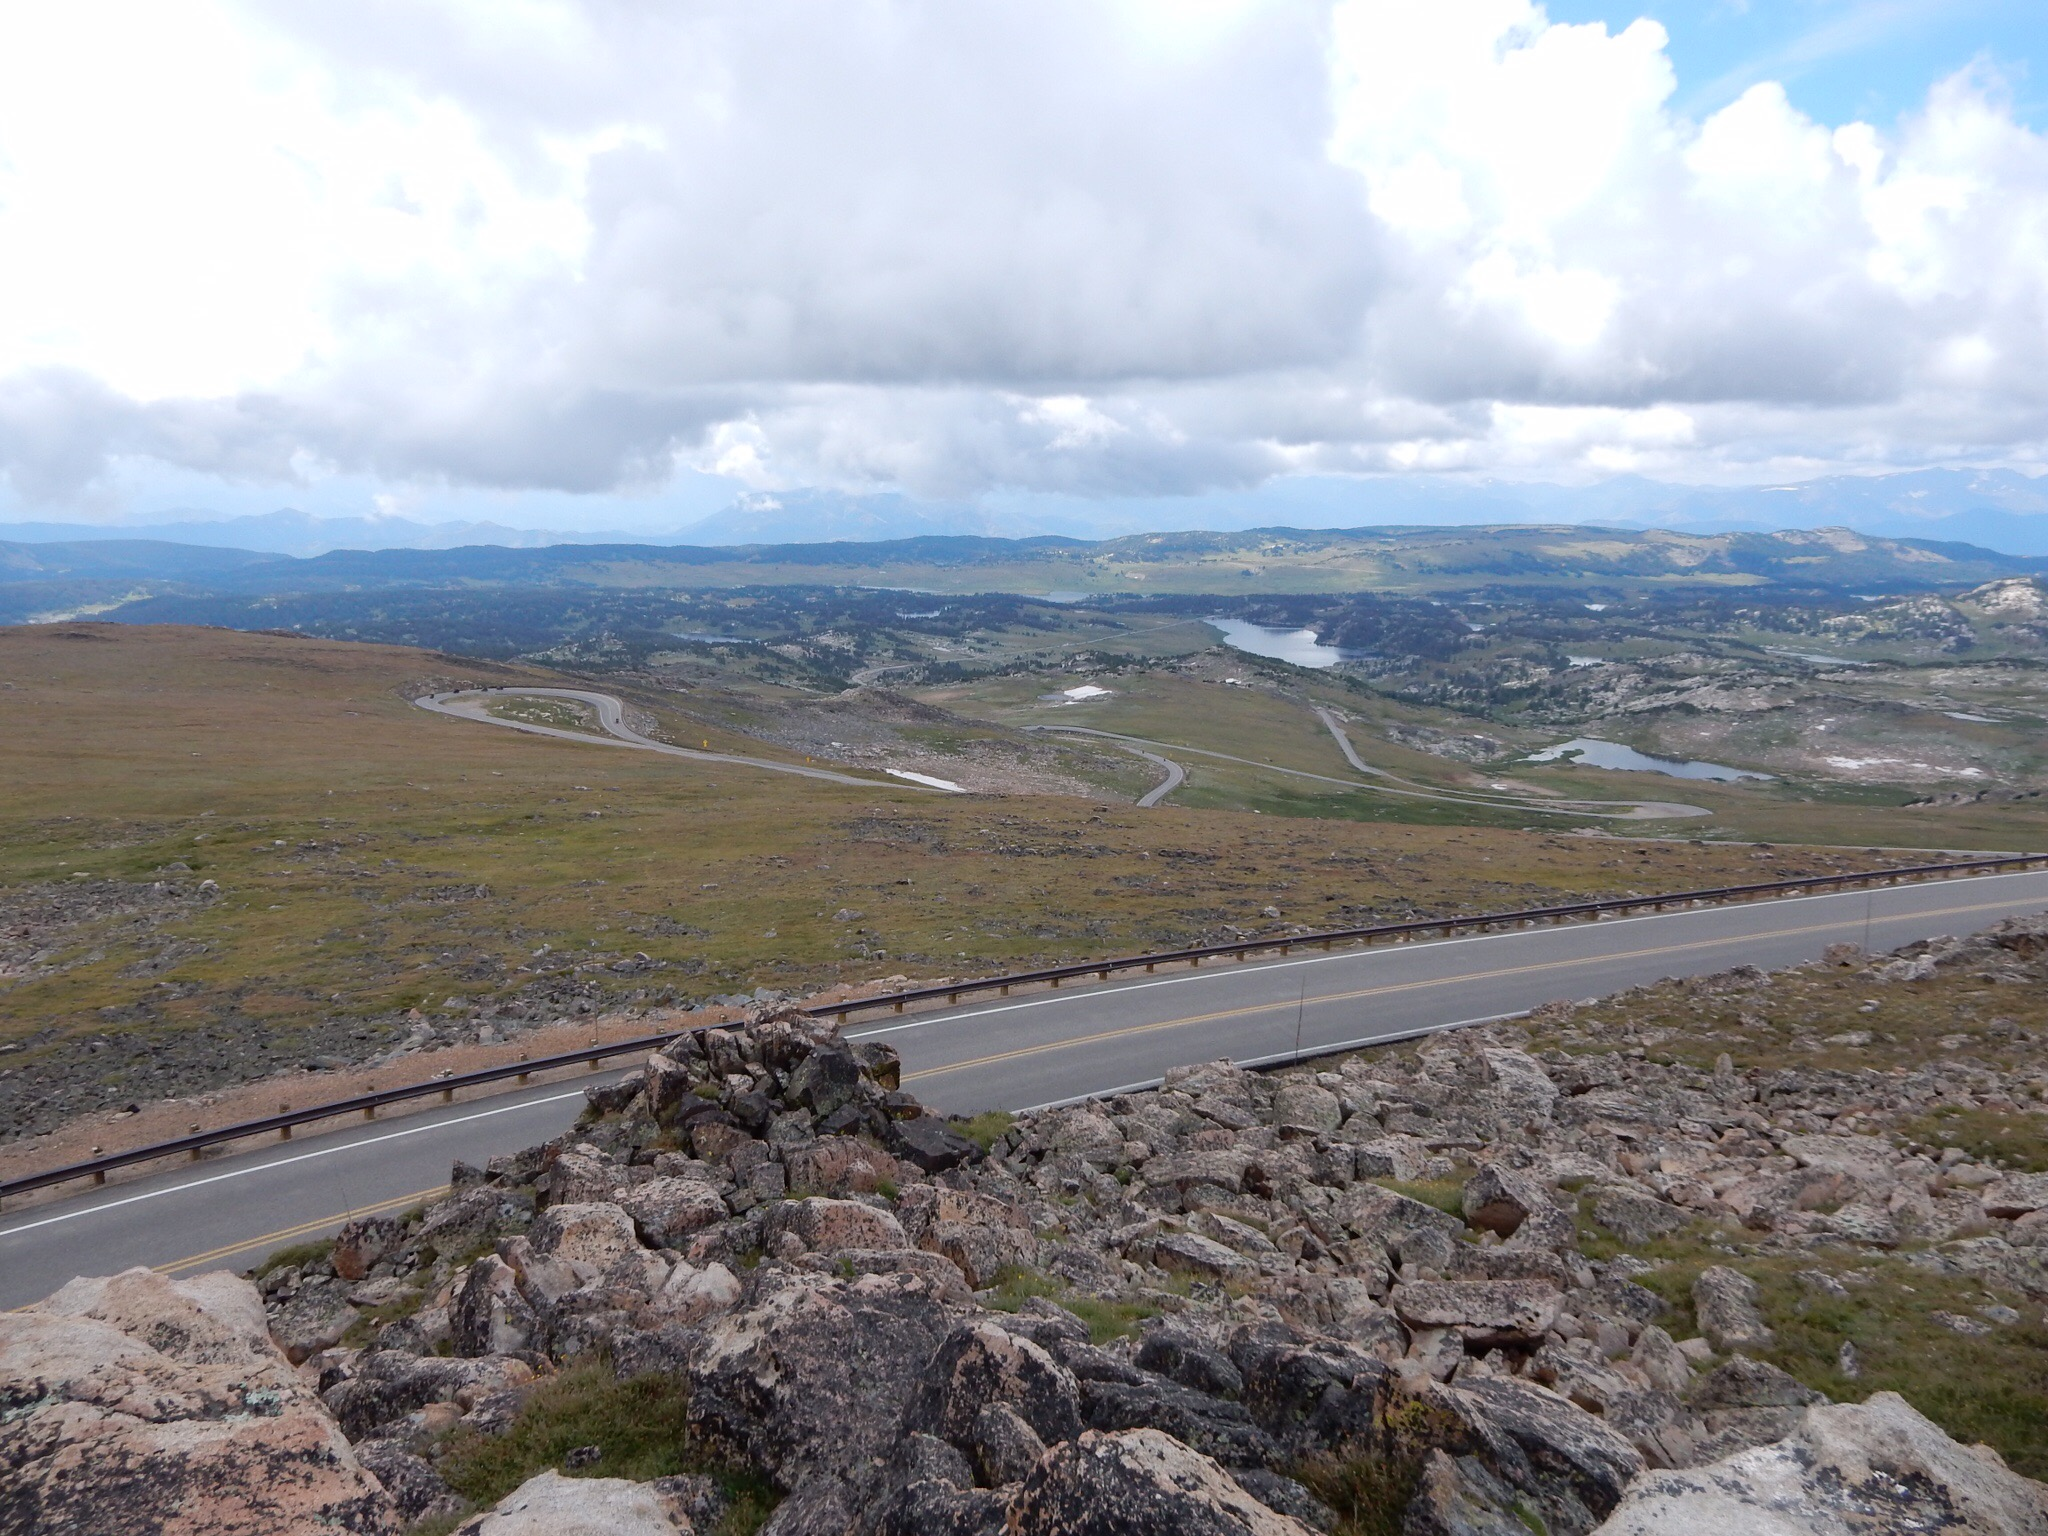 A view southwest from the top of Beartooth Pass.A view southwest from the top of Beartooth Pass.